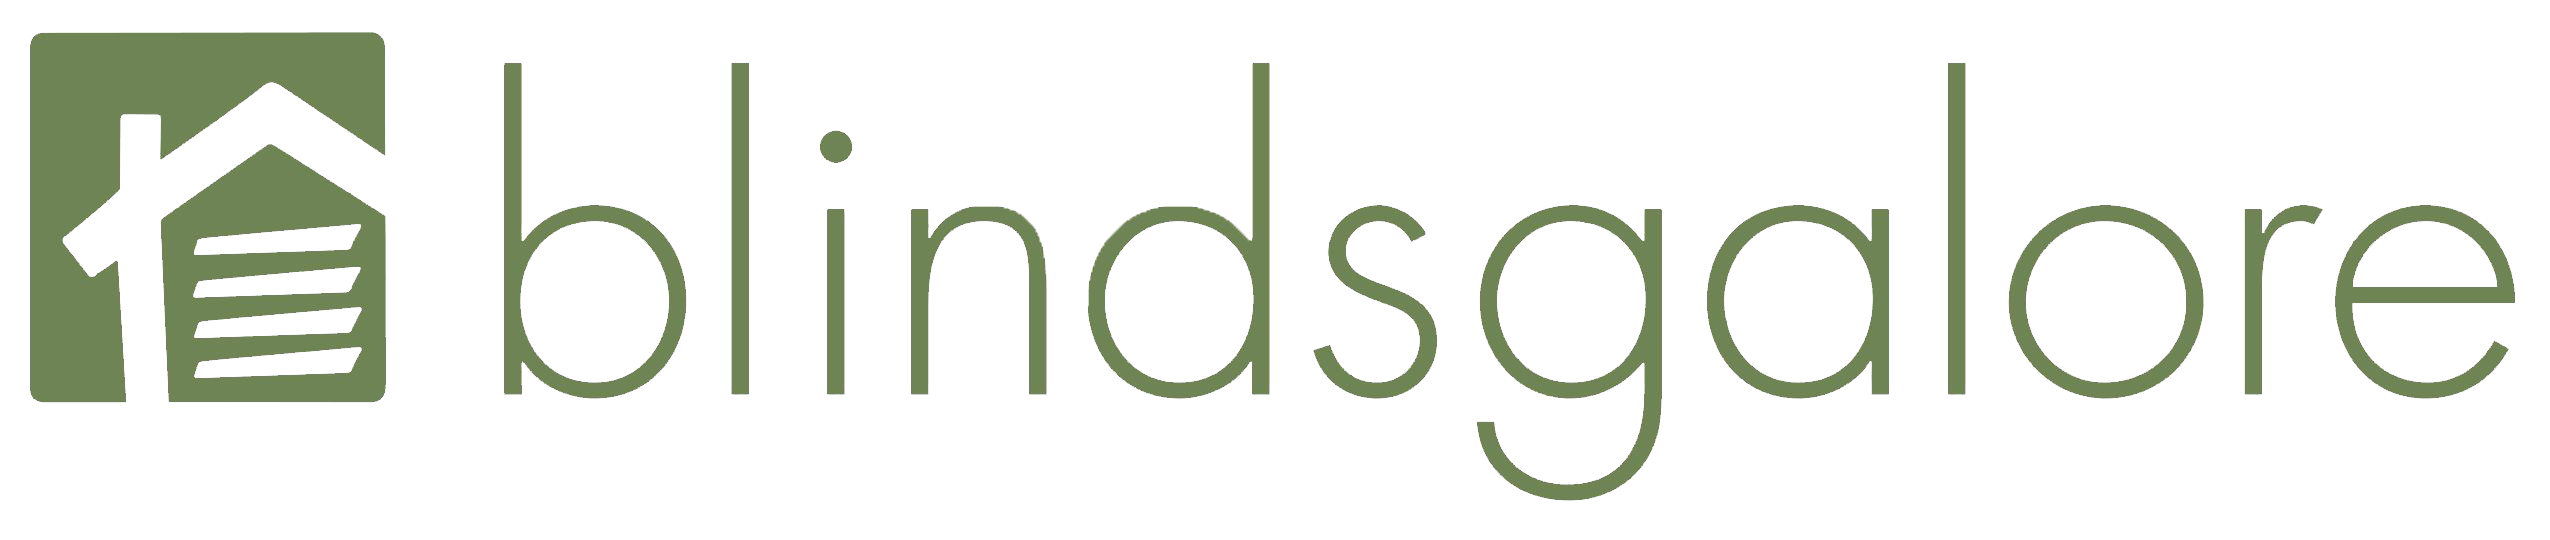 Blindsgalore-logo